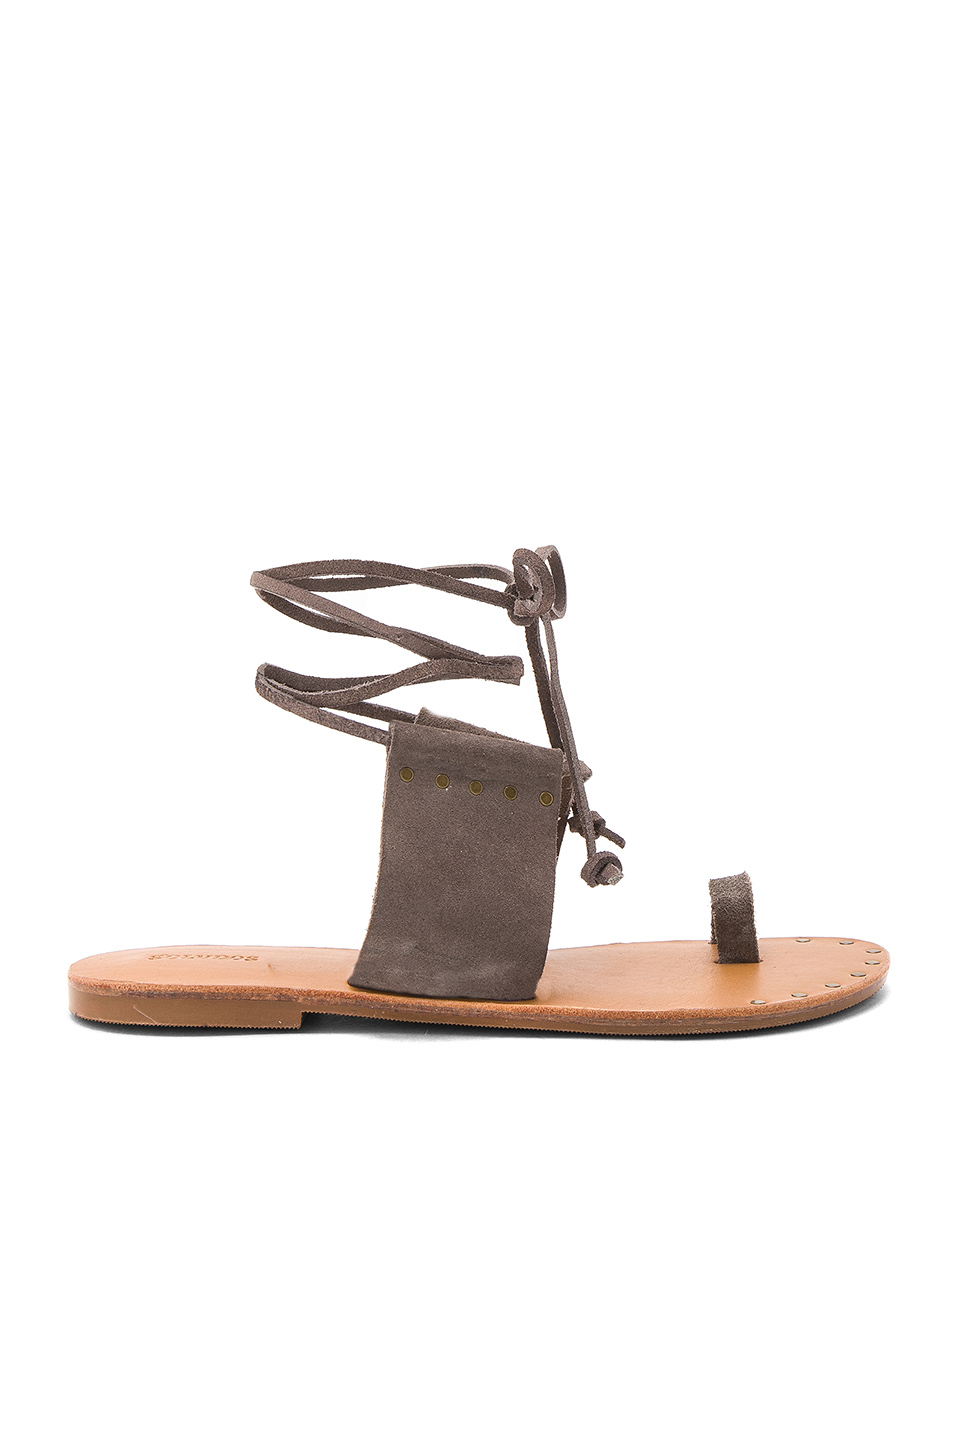 Soludos Milos Sandal in Dove Gray